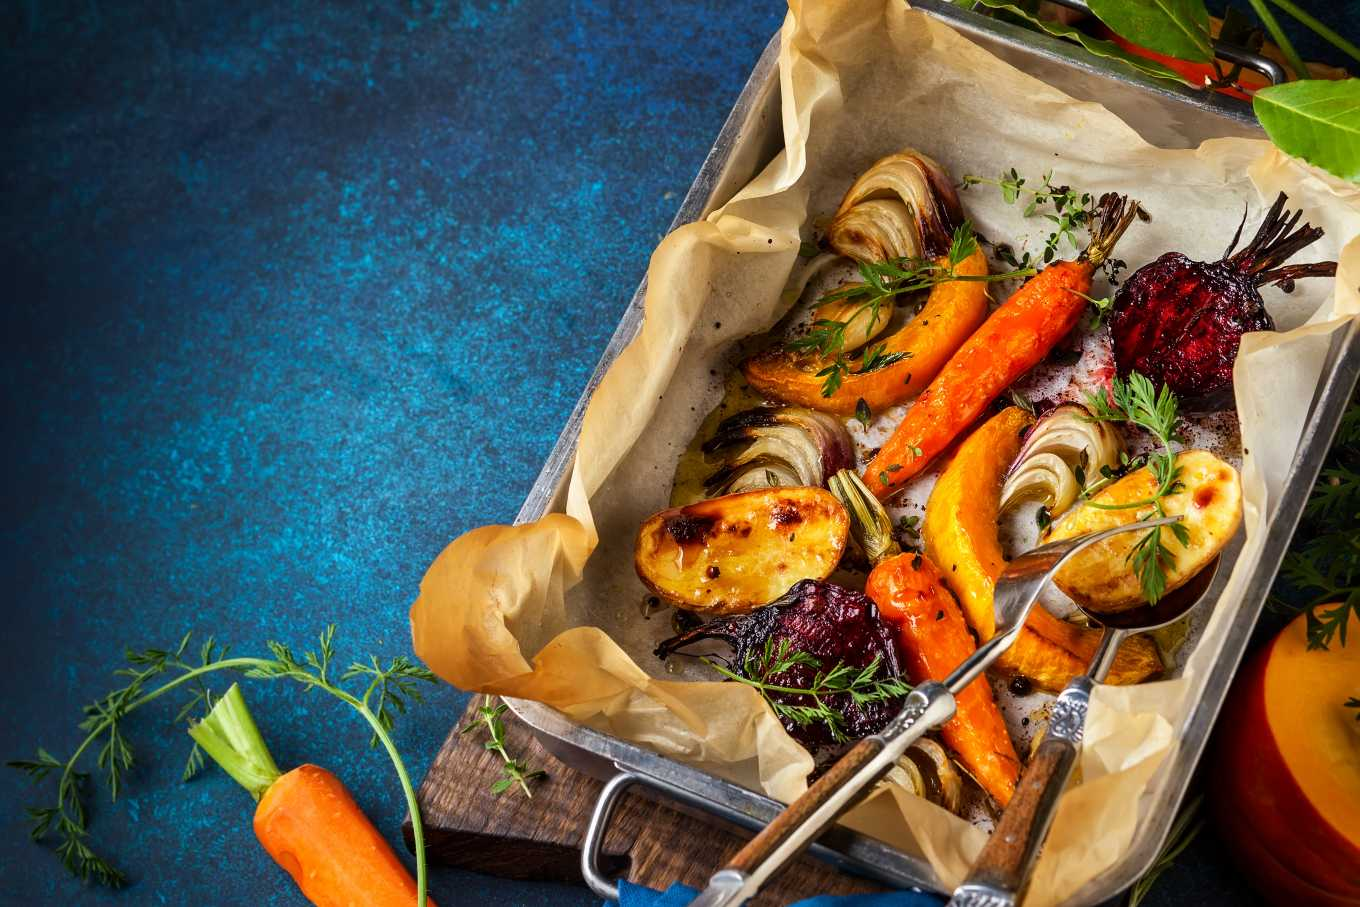 Here is the key to roasted vegetables made easy!